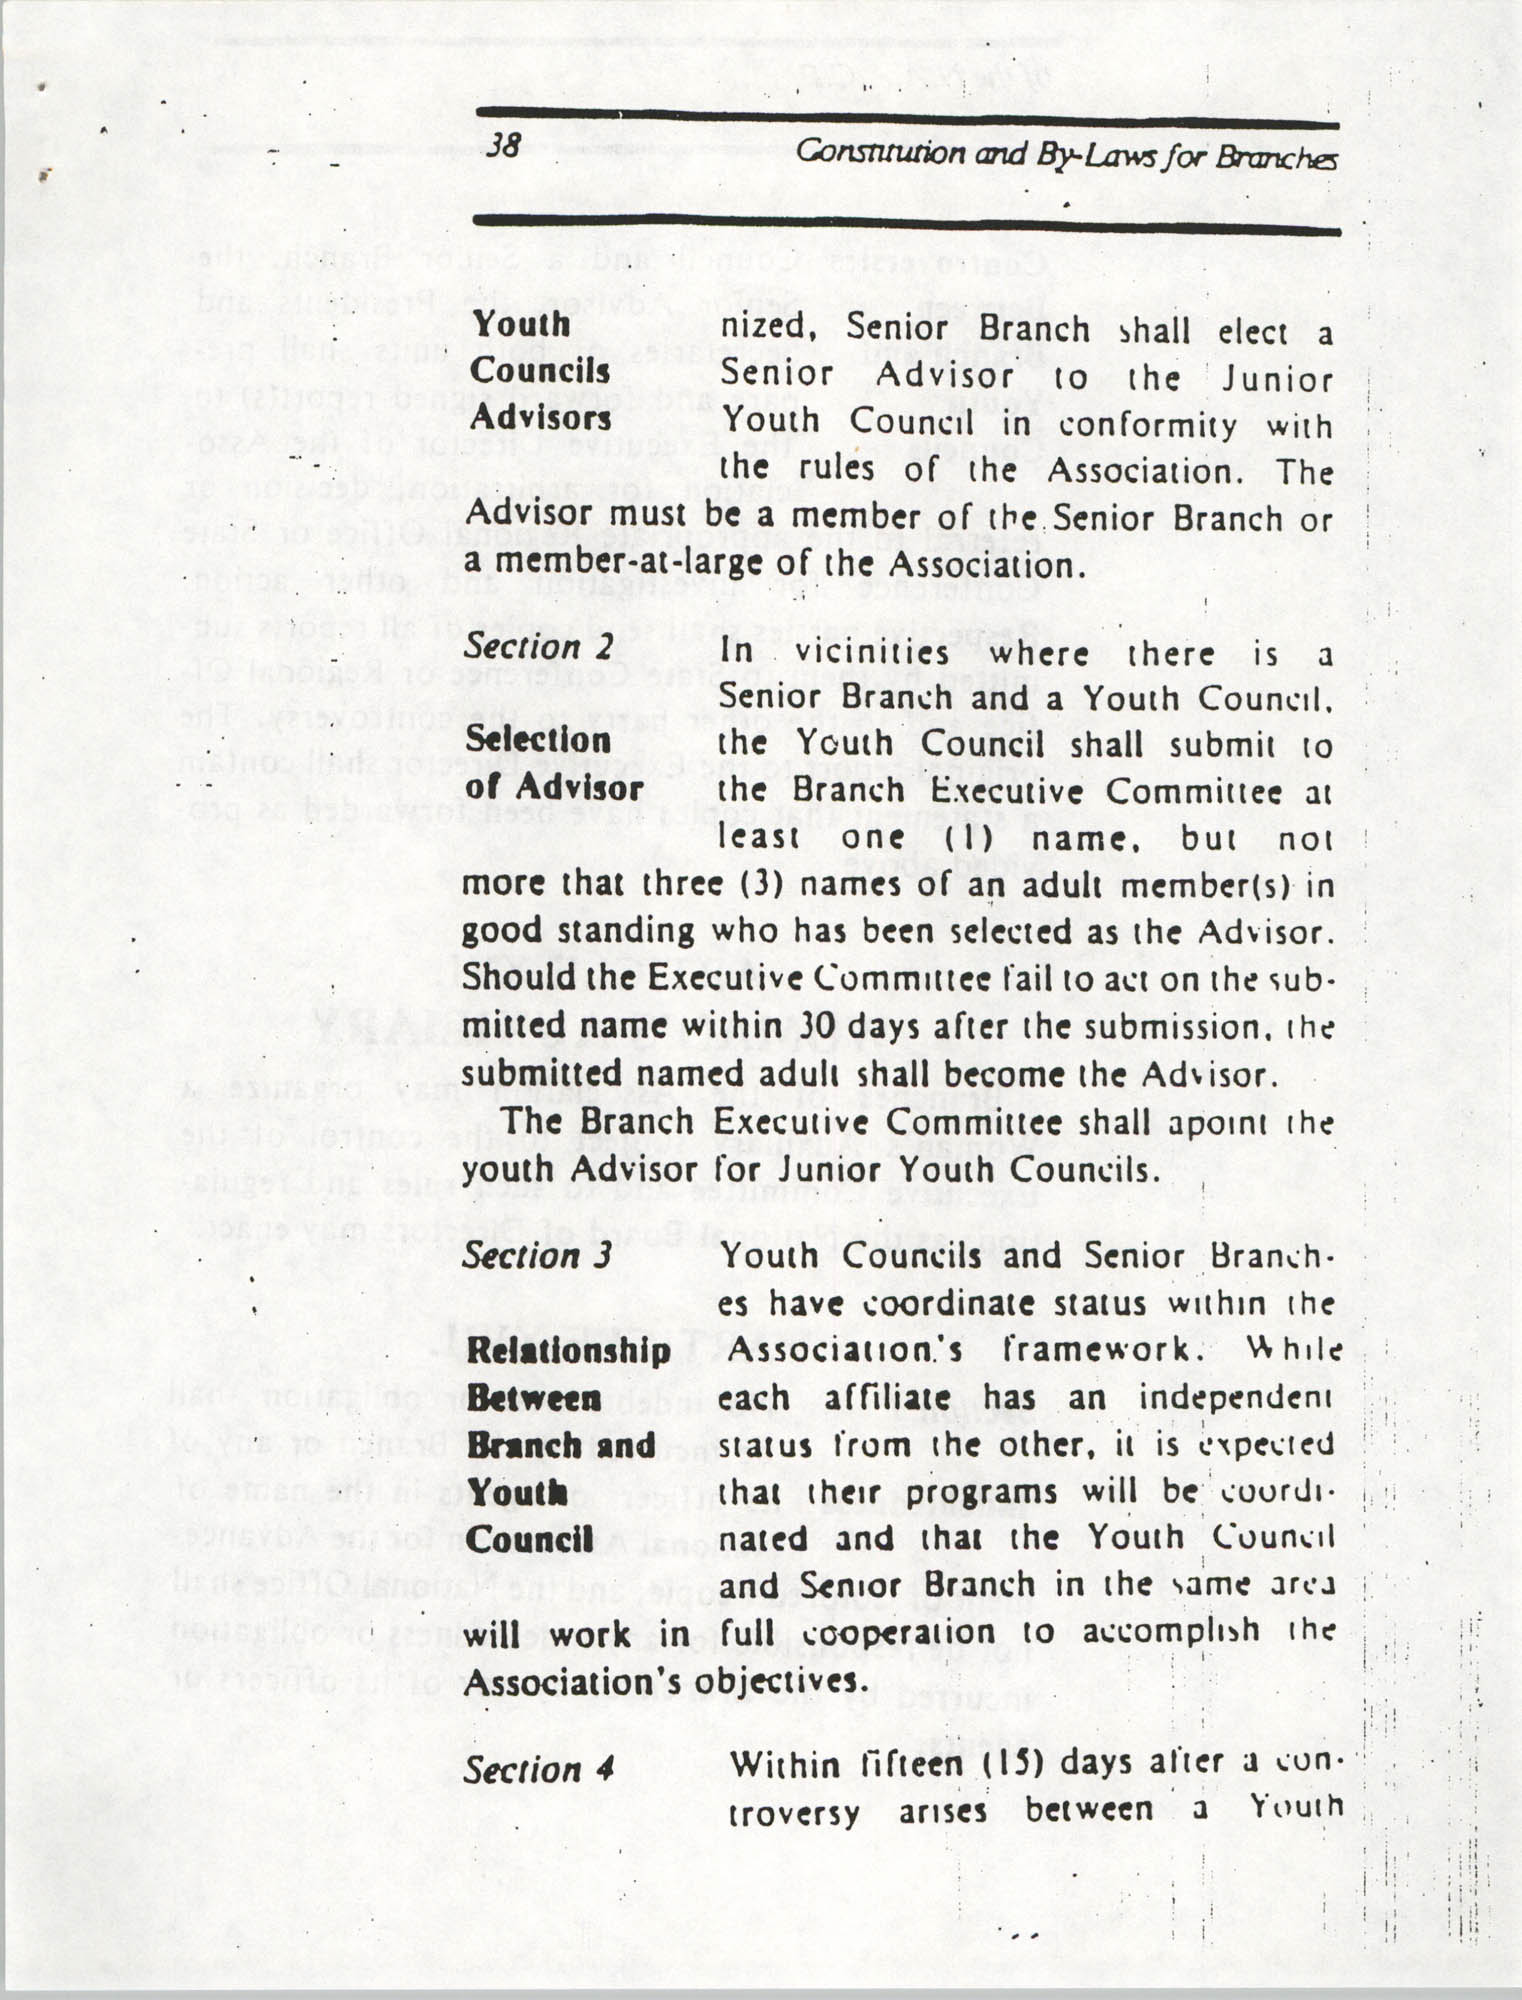 Constitution and By-Laws for Branches of the NAACP, March 1992, Page 38